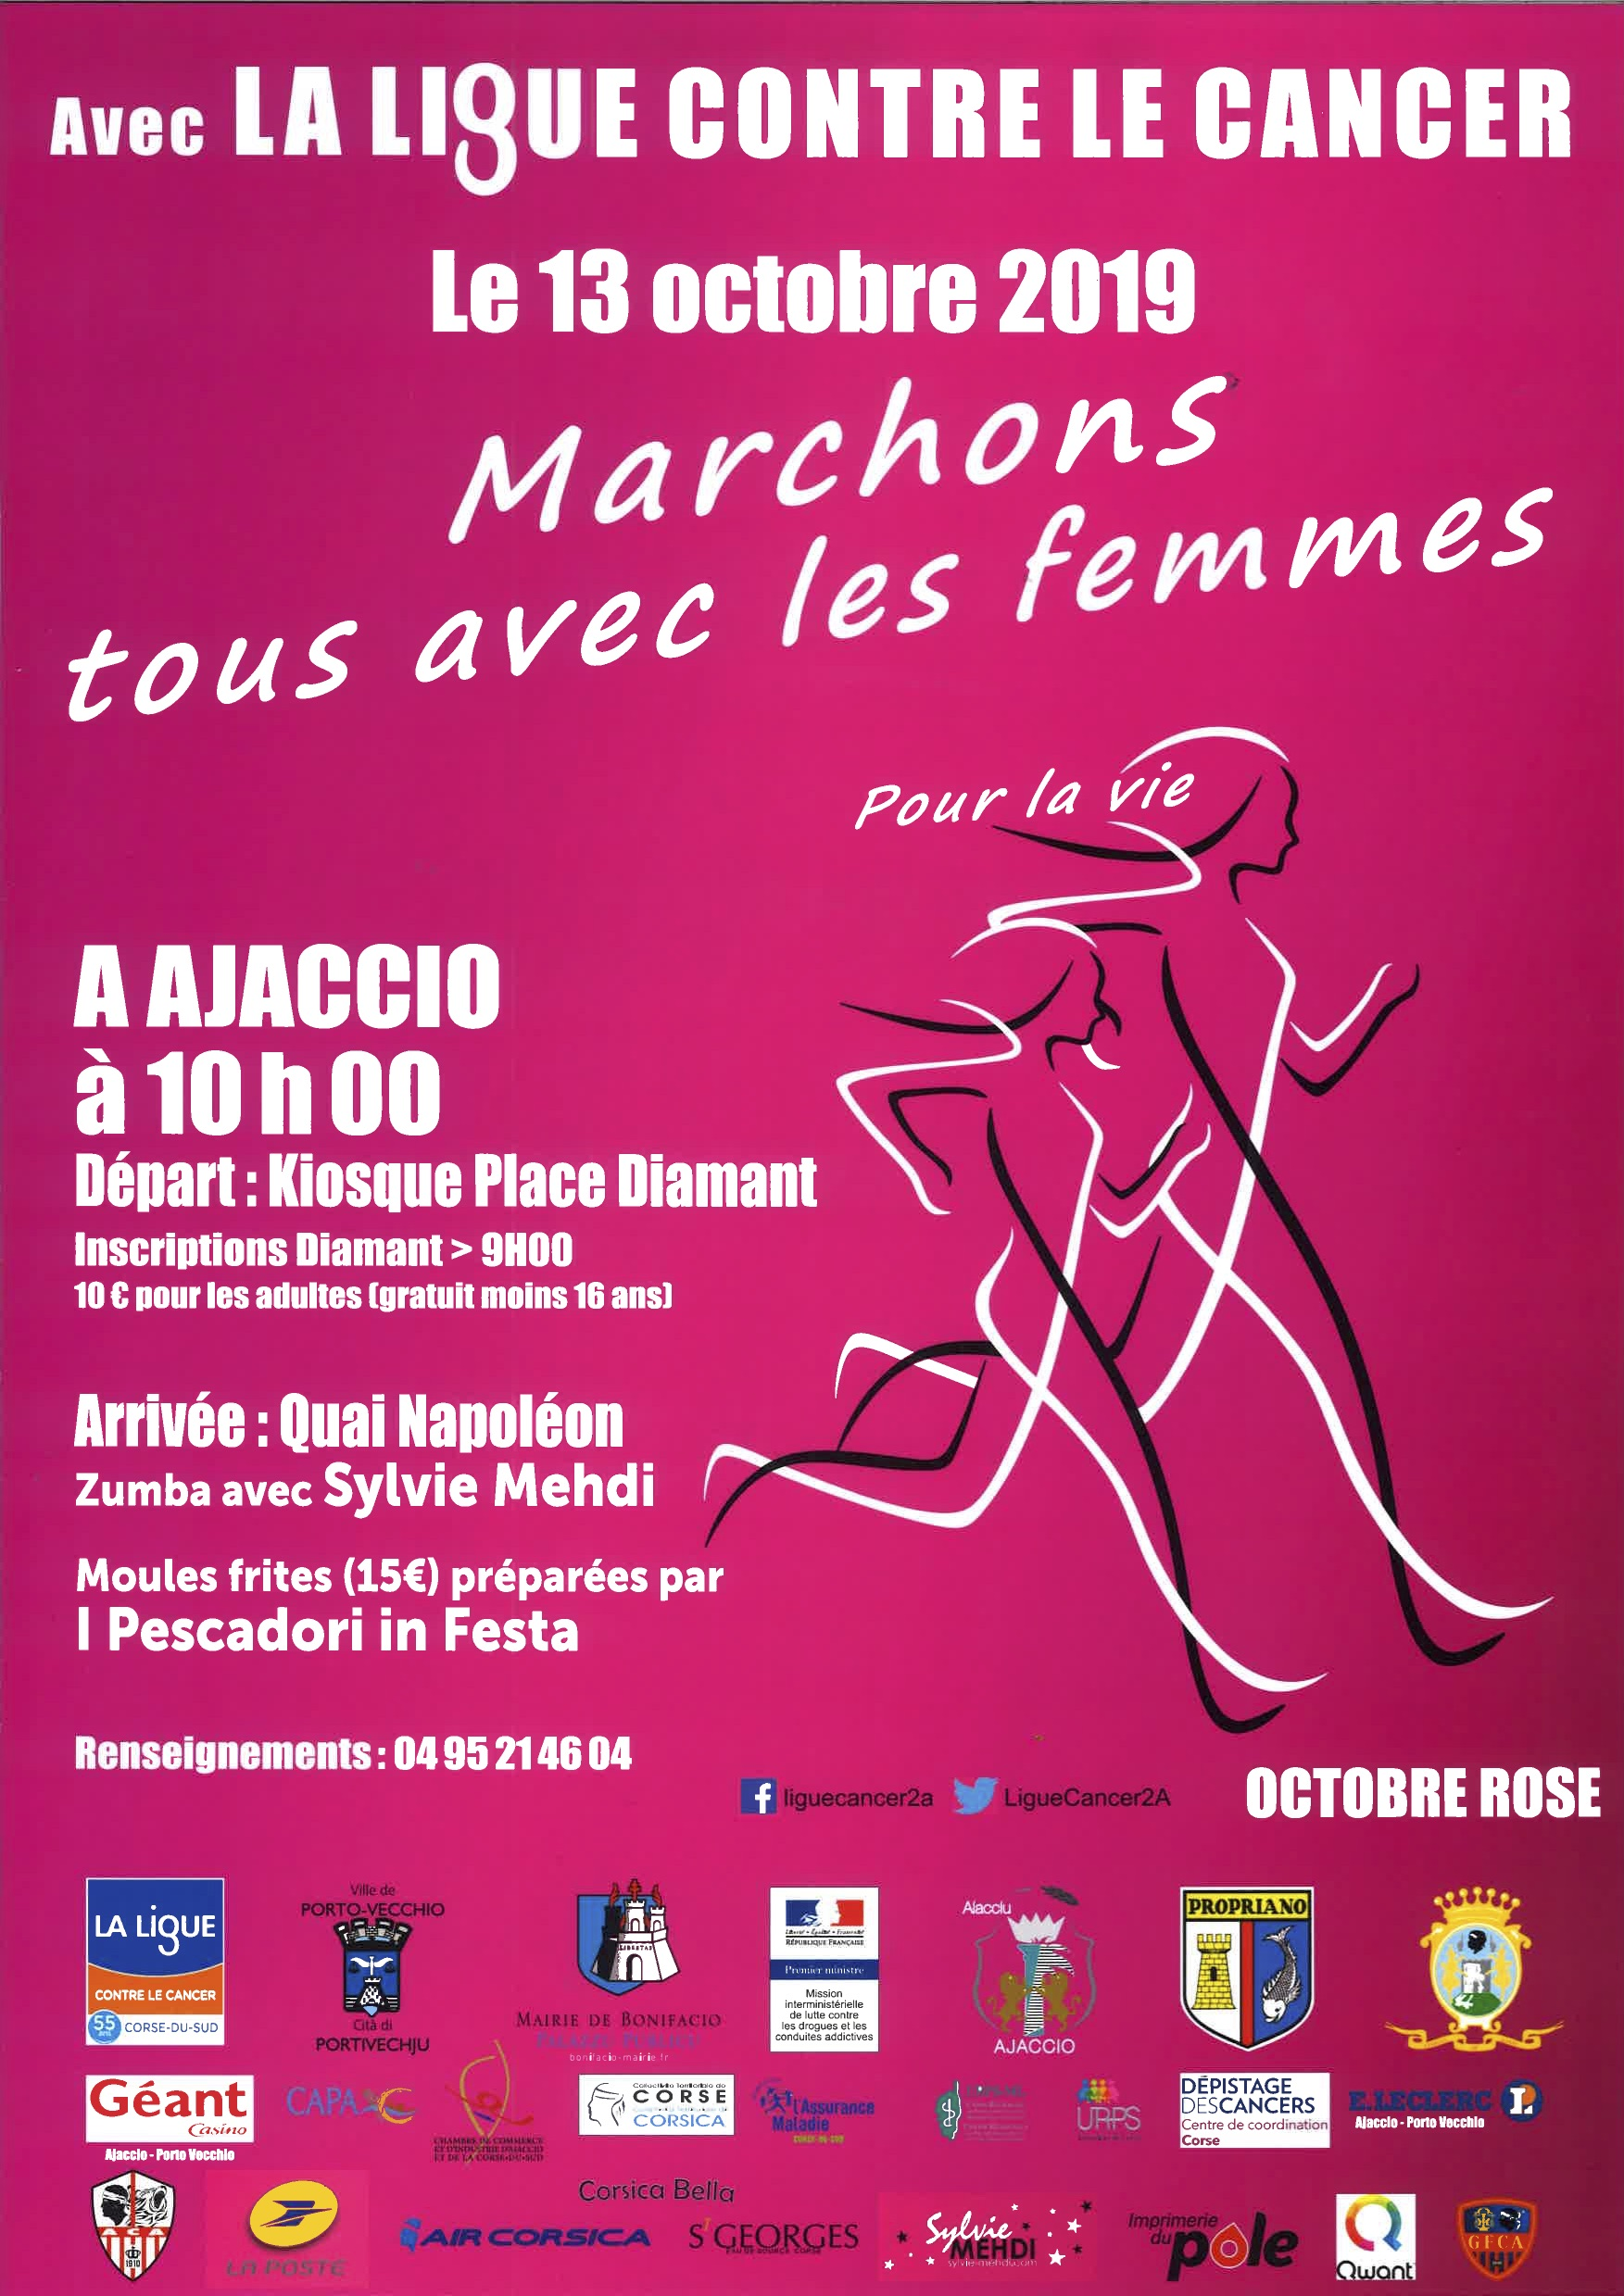 Cancer du sein : participez aux marches roses ce weekend en Corse